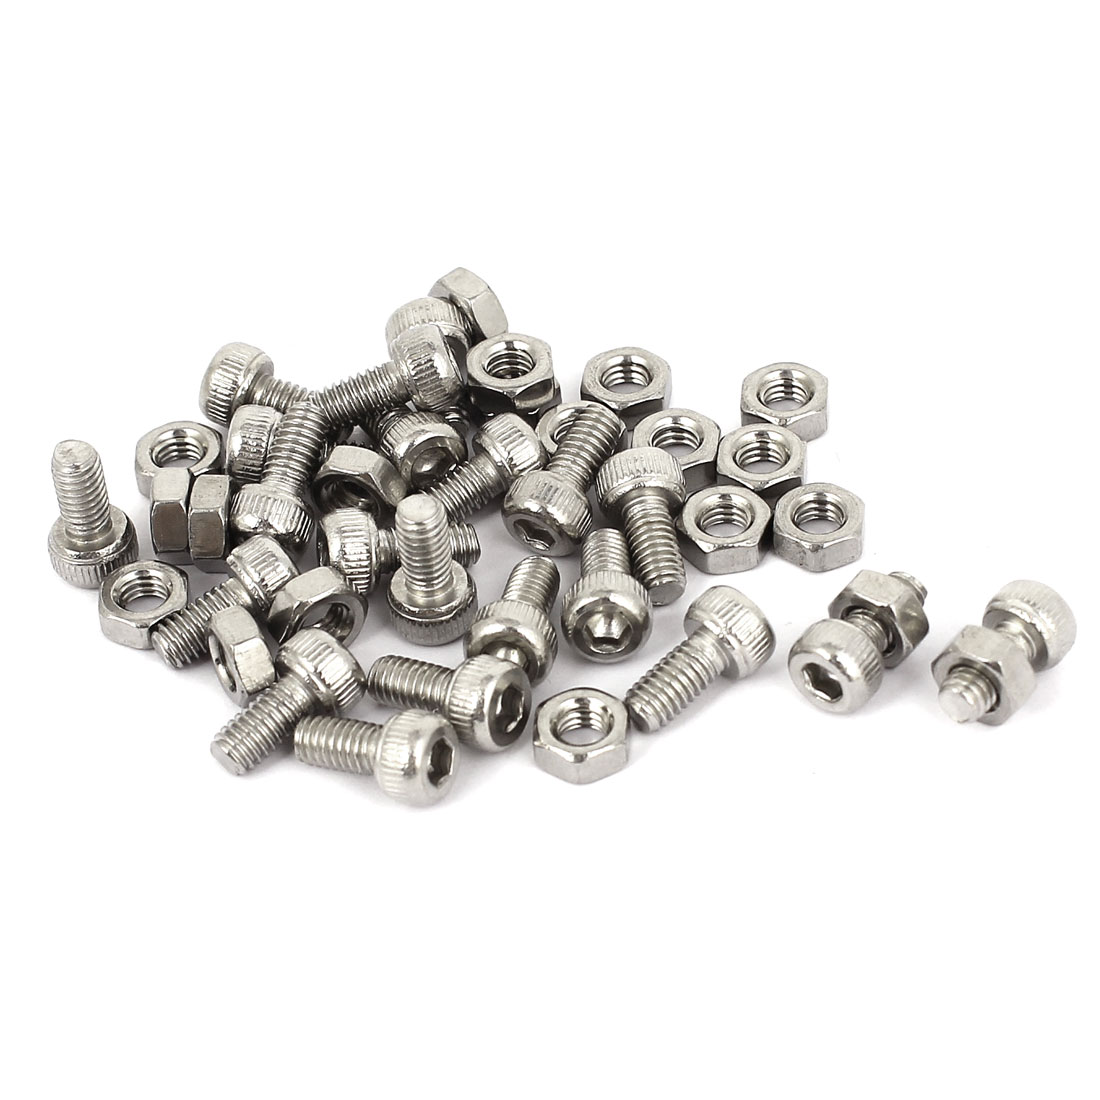 M4x8mm Stainless Steel Hex Socket Head Knurled Cap Screws Bolts Nut Set 20Pcs